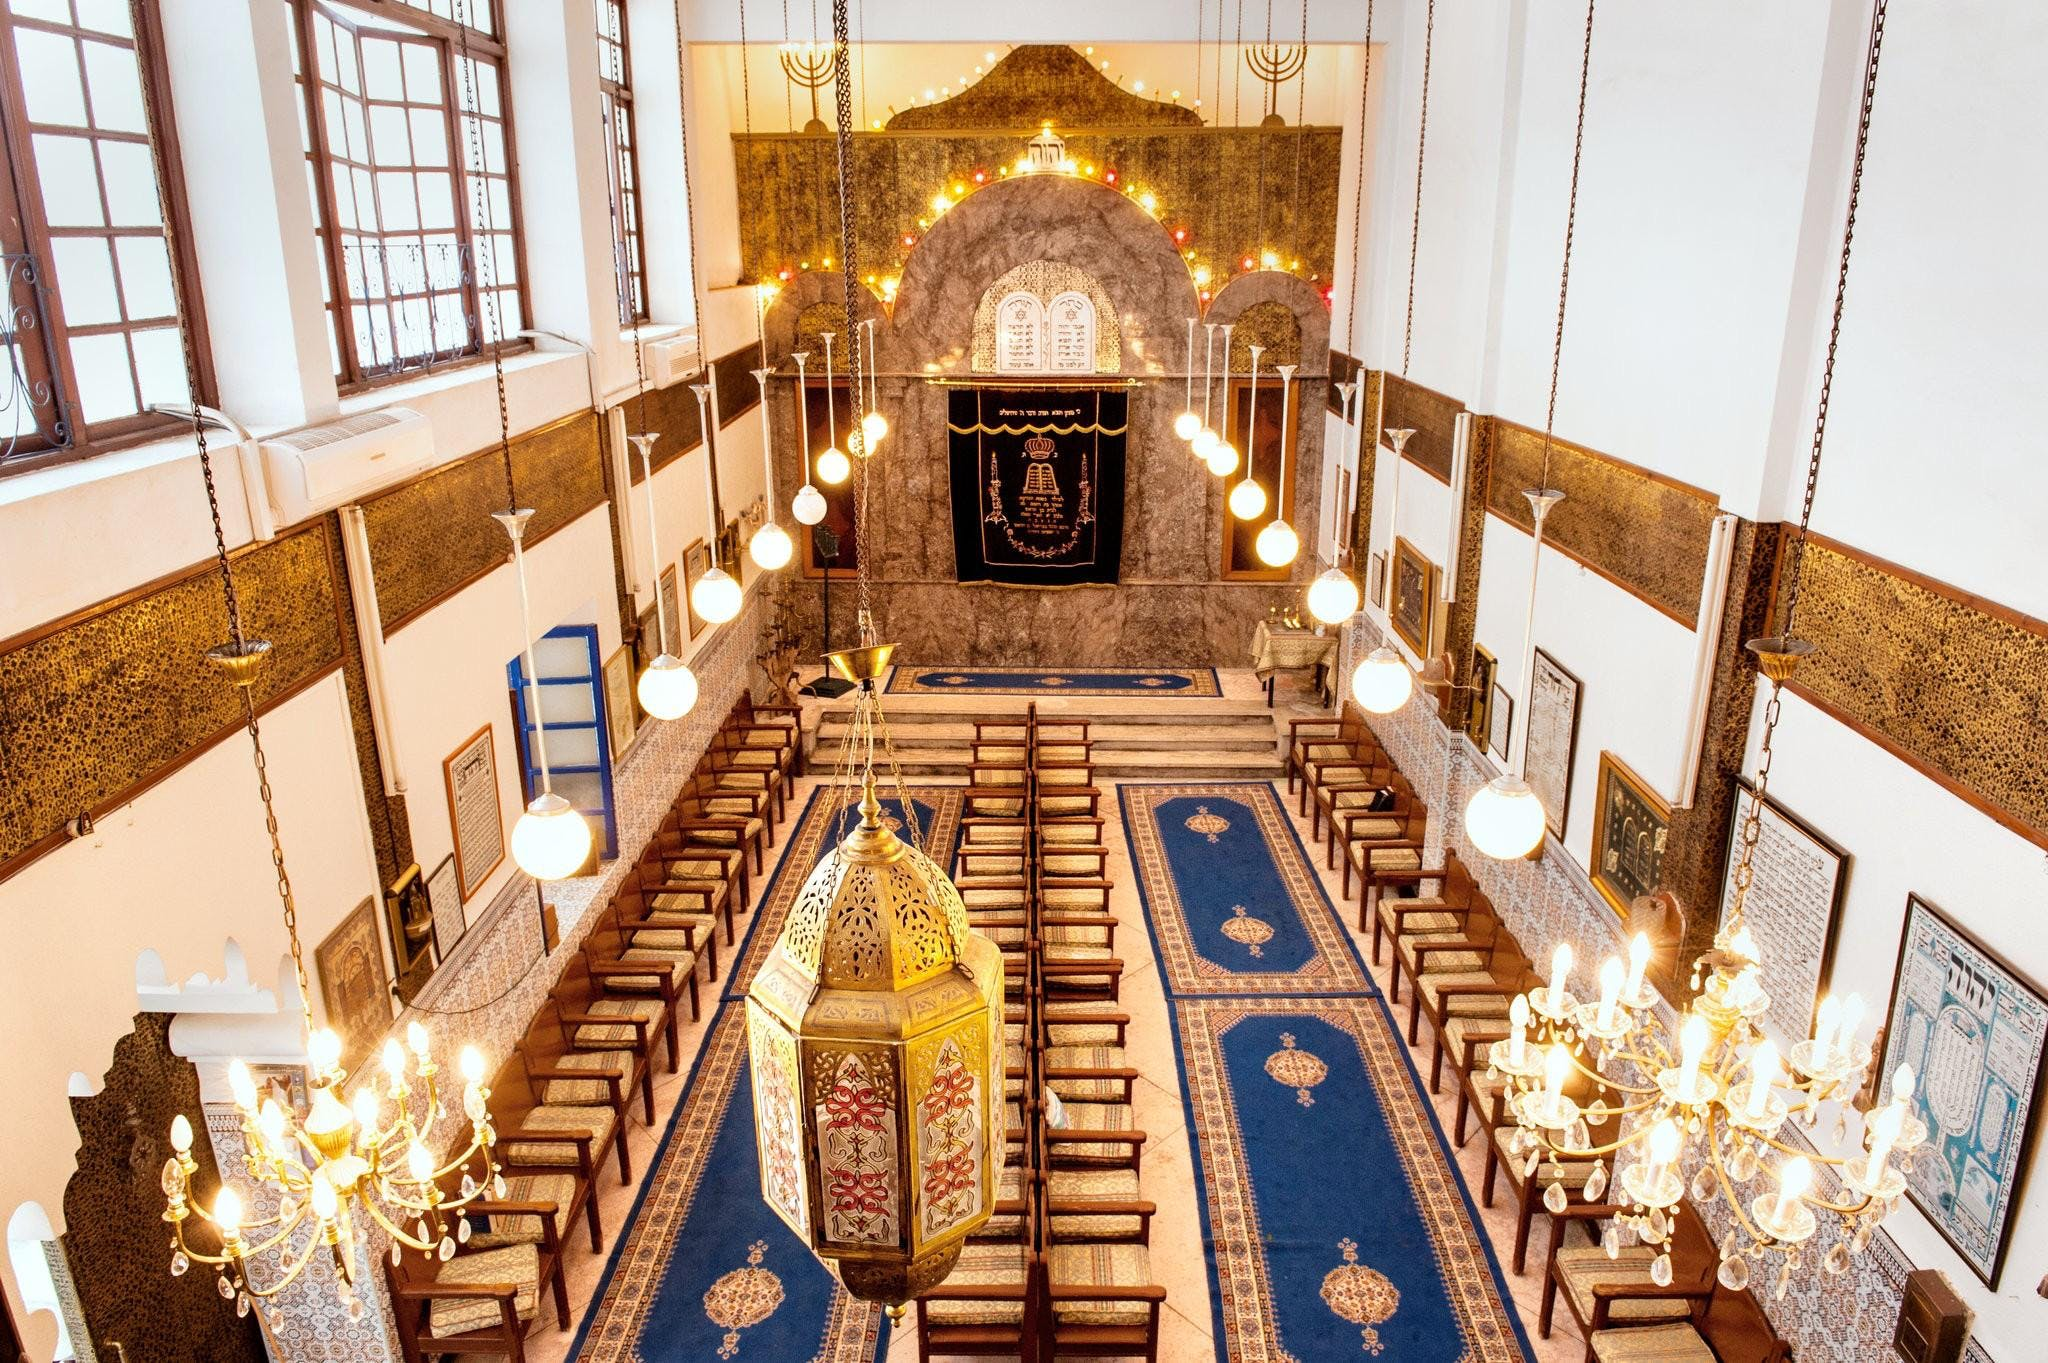 Synagogue in Marrakesh as seen from above. A row of round lanterns leads to the front of the room.